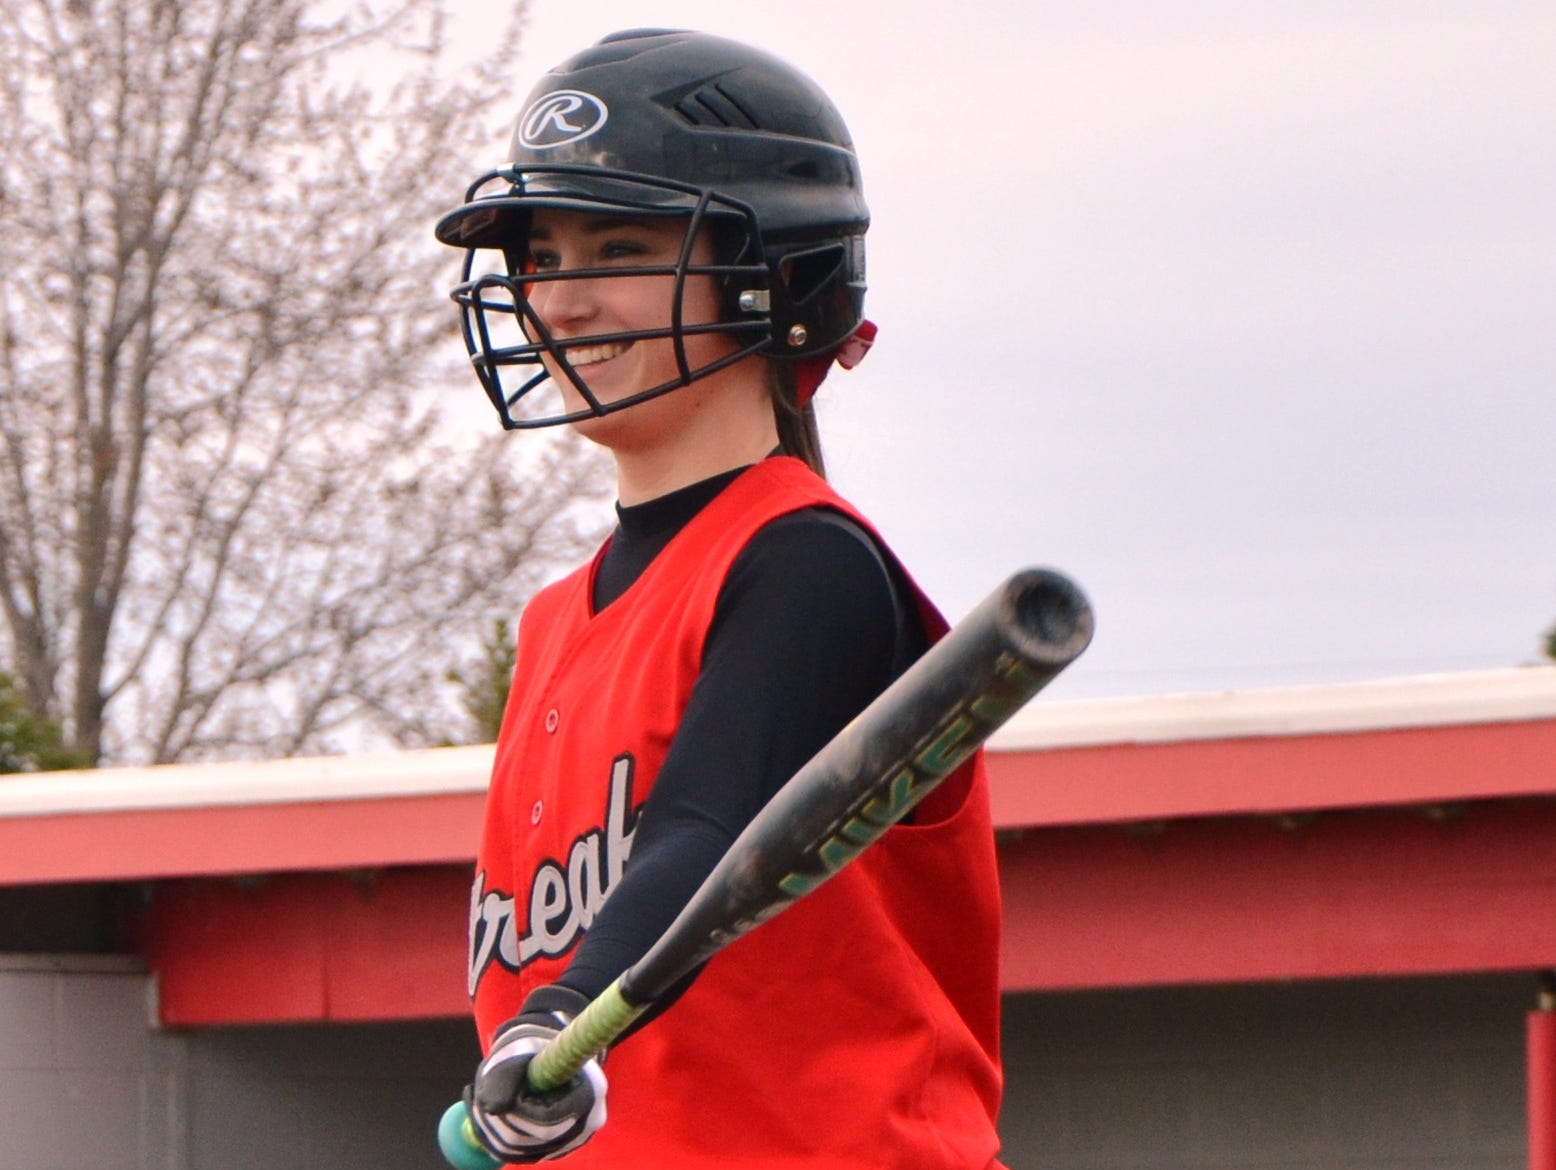 St. Joseph Central Catholic senior Josie Weickert smiles during an at-bat in SJCC's softball game against Clyde High School on Monday. Weickert is playing softball following two injuries to her right knee in the last three years.